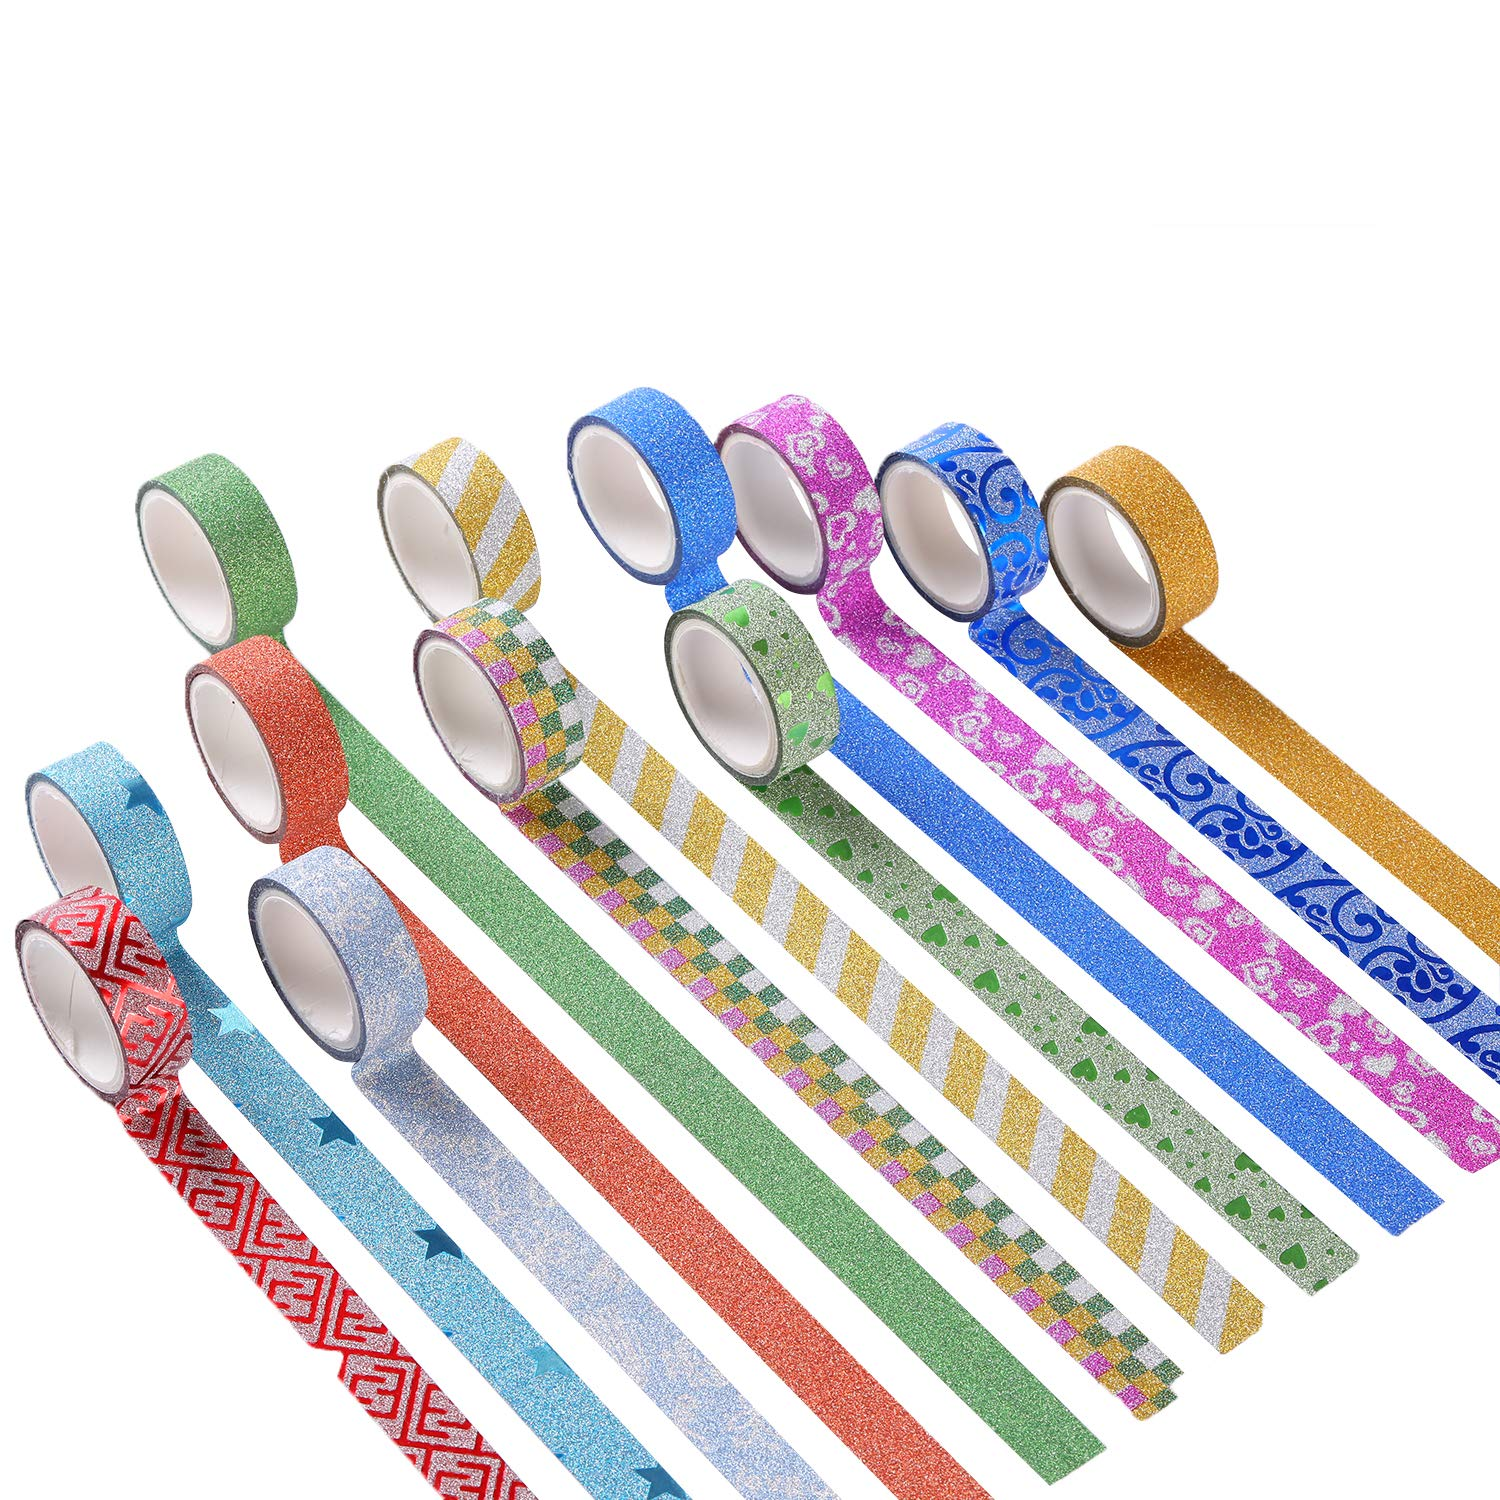 MONICO 39 Glitter Washi Tape Craft Decorative Tape Great for Bujo,Bullet Journal Accessories,Scrapbook Arts and Crafts Projects